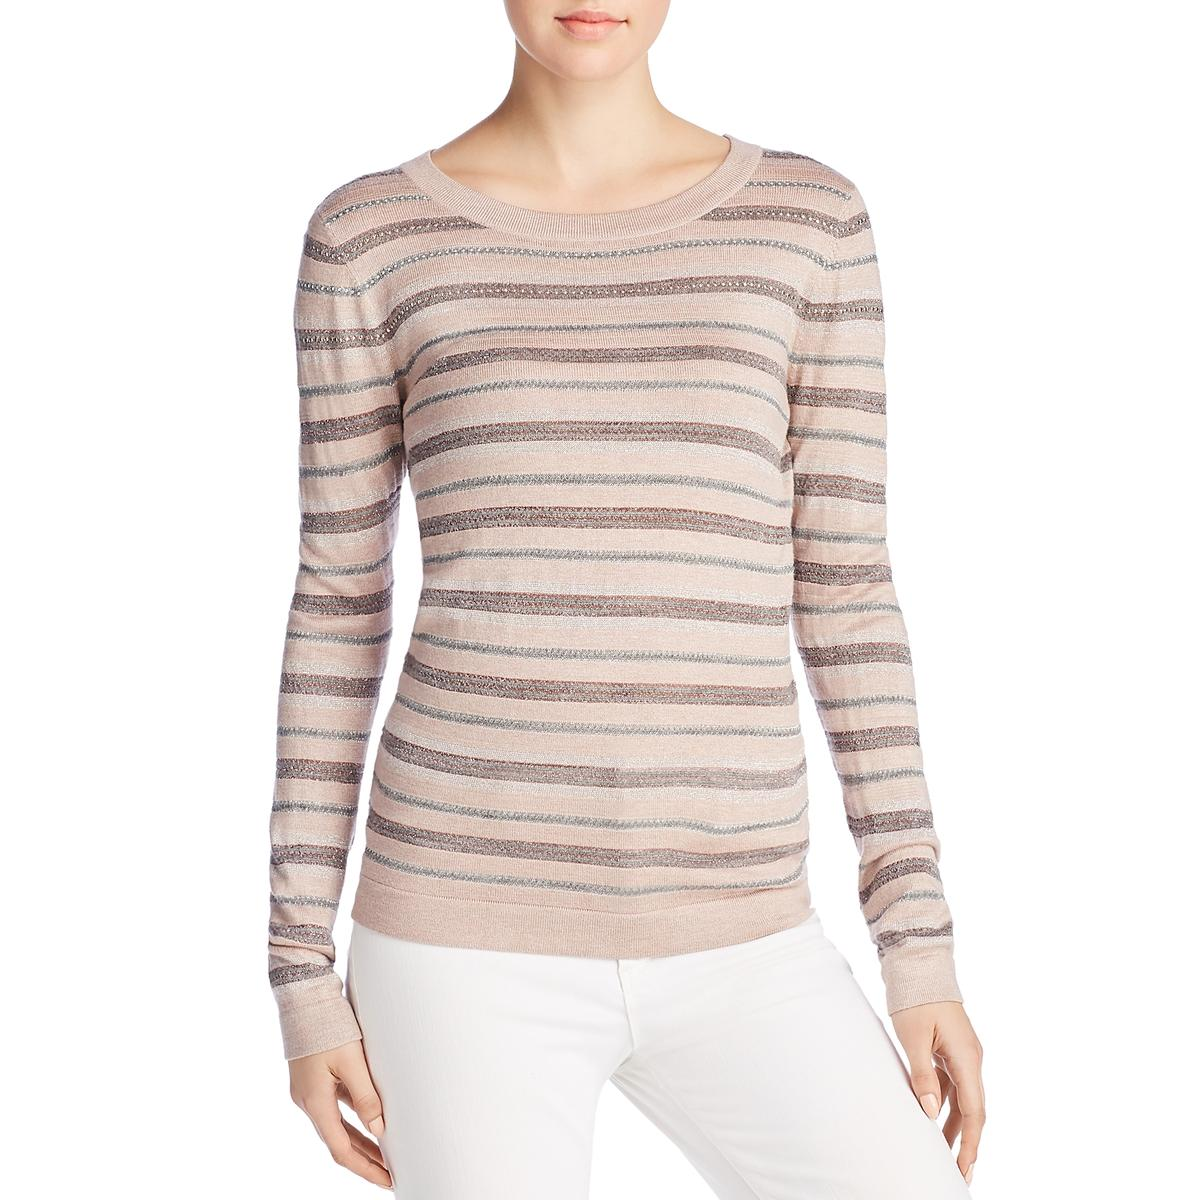 Copy of Donna Karan Womens Crewneck Striped Pullover Sweater